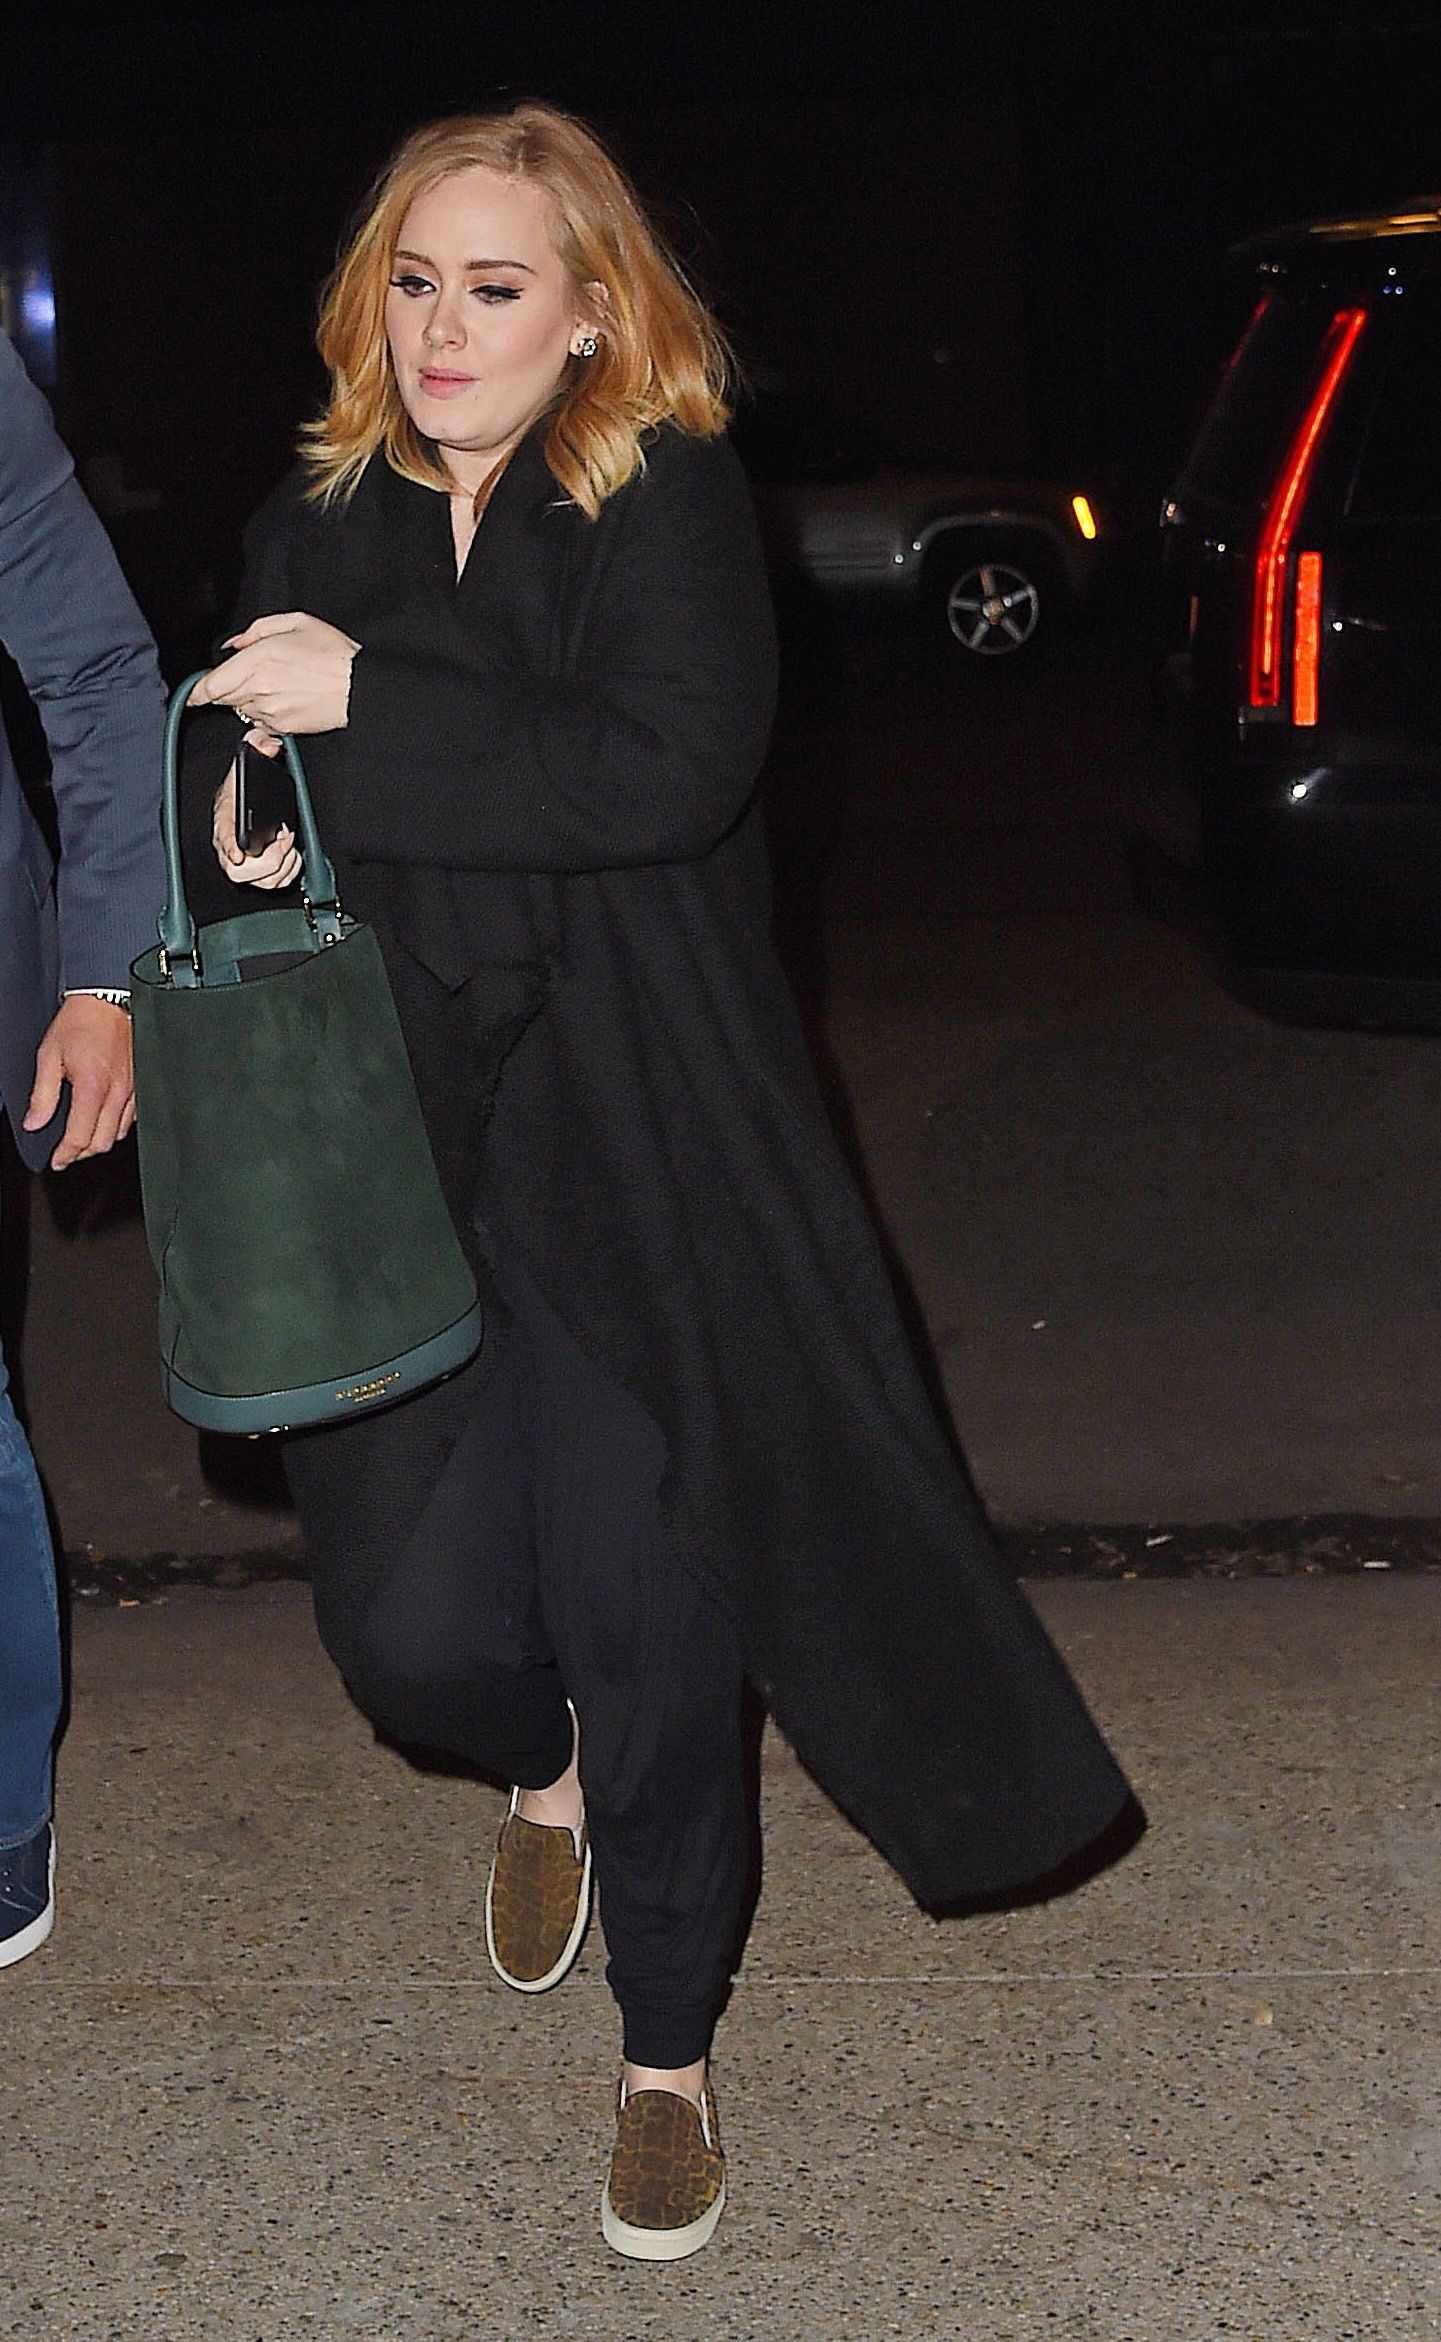 Adele wearing the @Burberry Bucket Bag . Photo © by Burberry